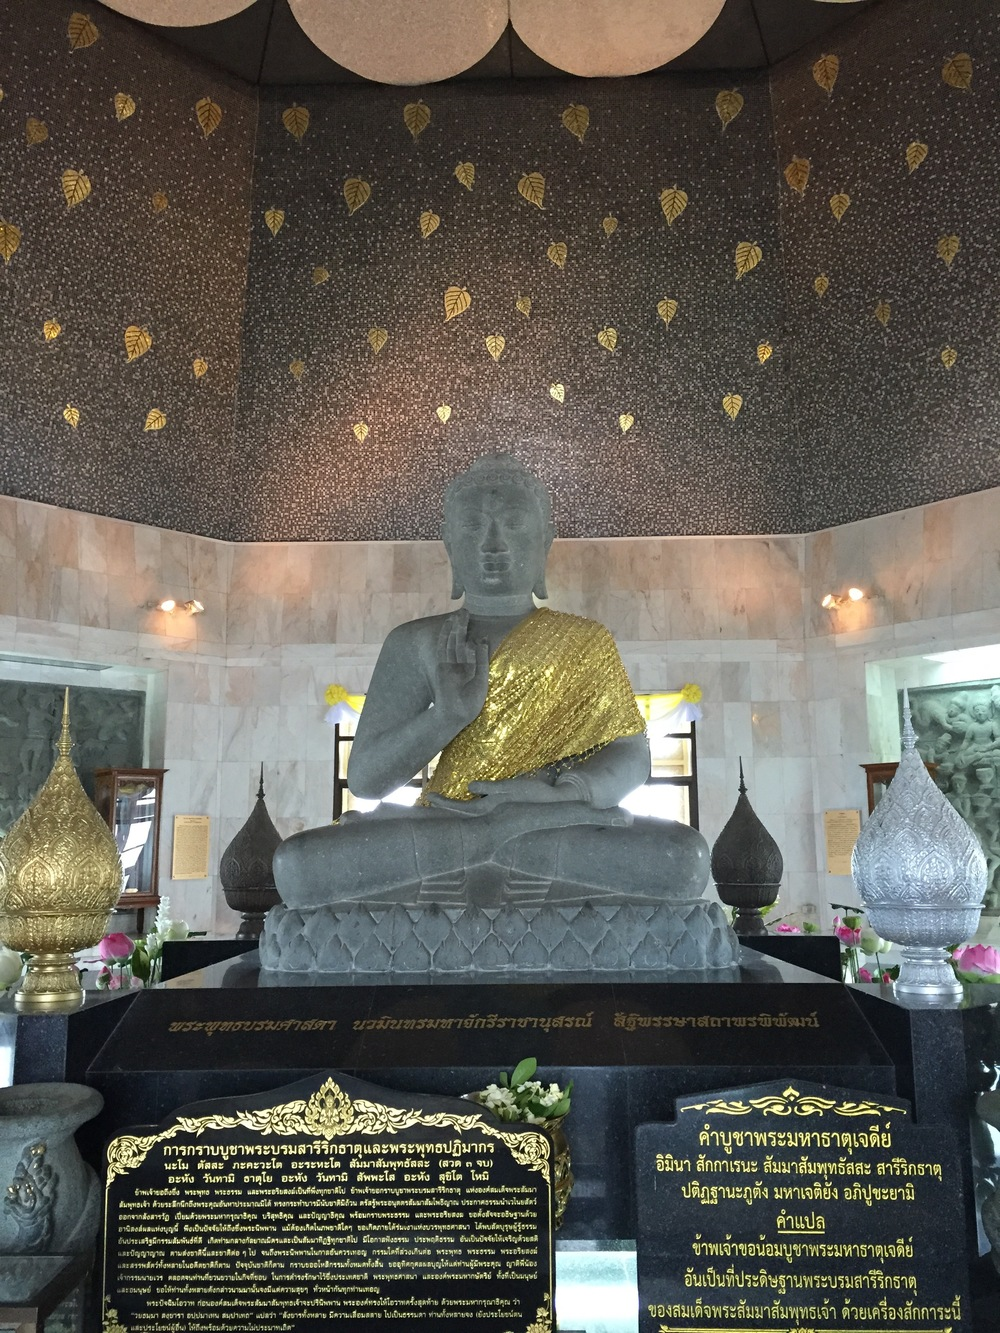 inside the gold stupa